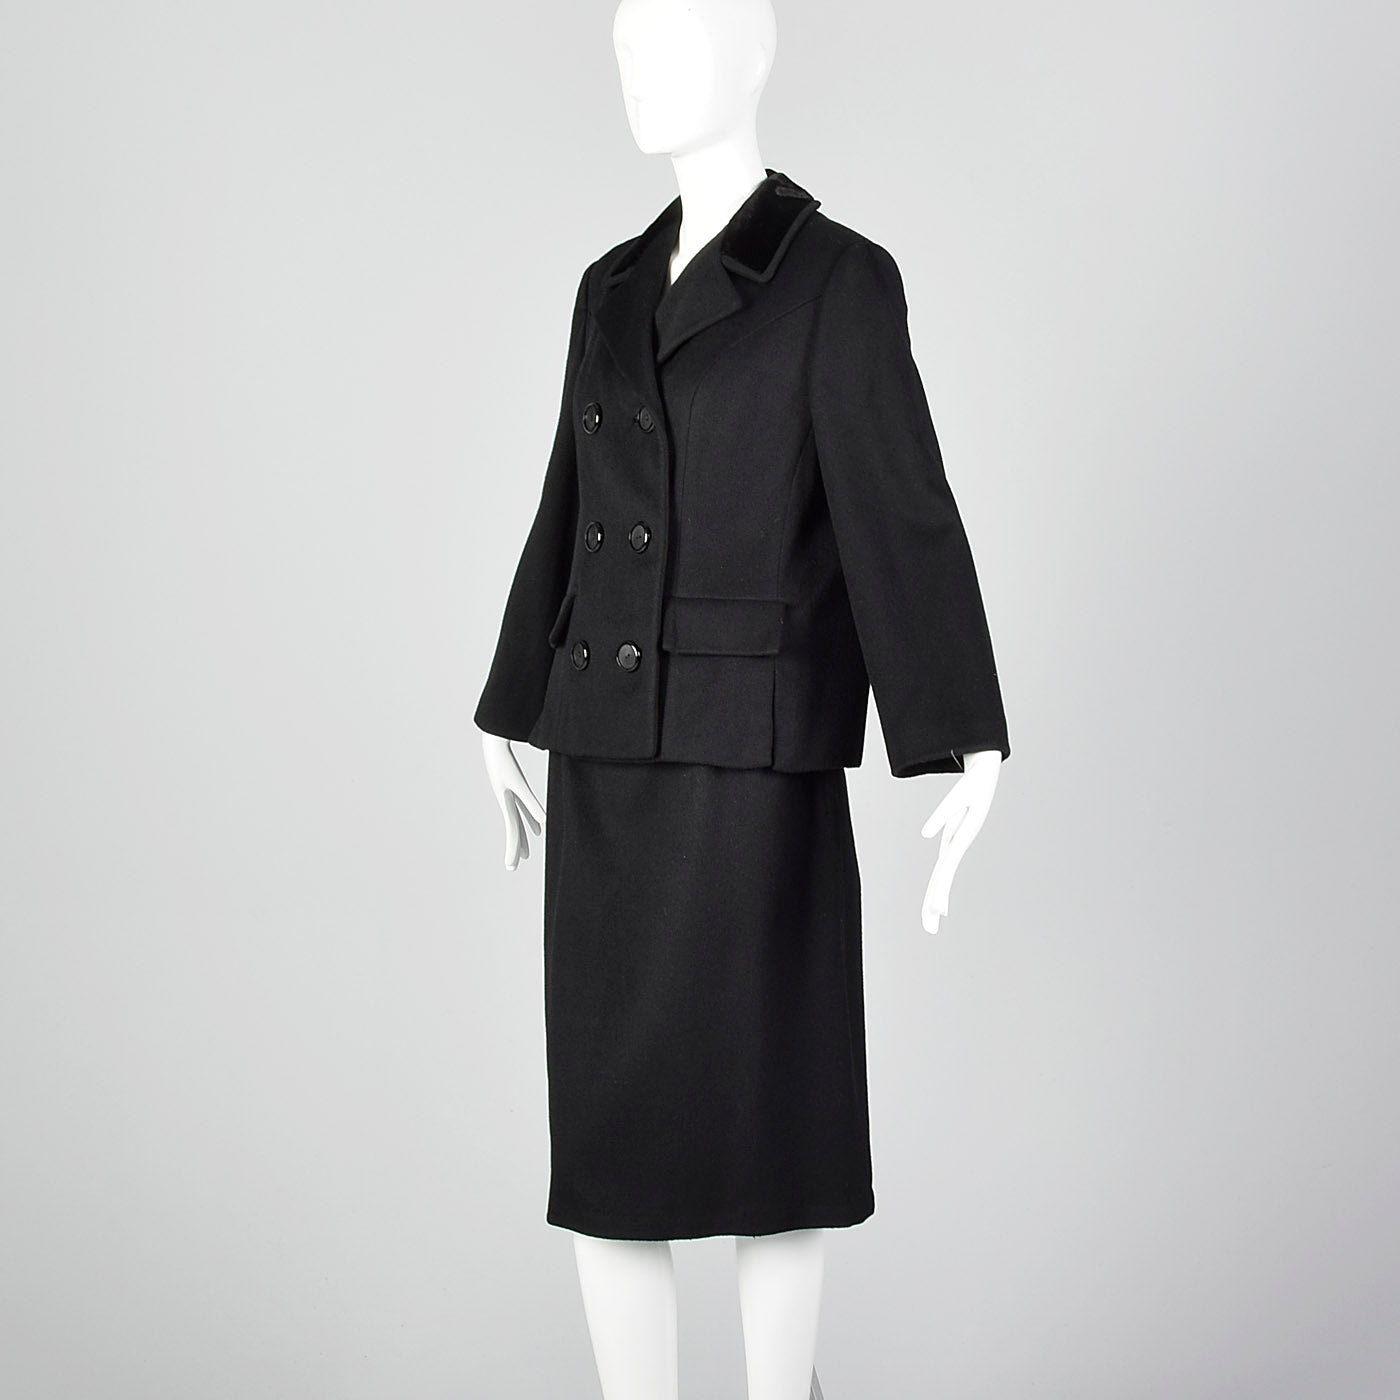 1960s Black Winter Skirt Suit with Boxy Jacket and Pencil Skirt